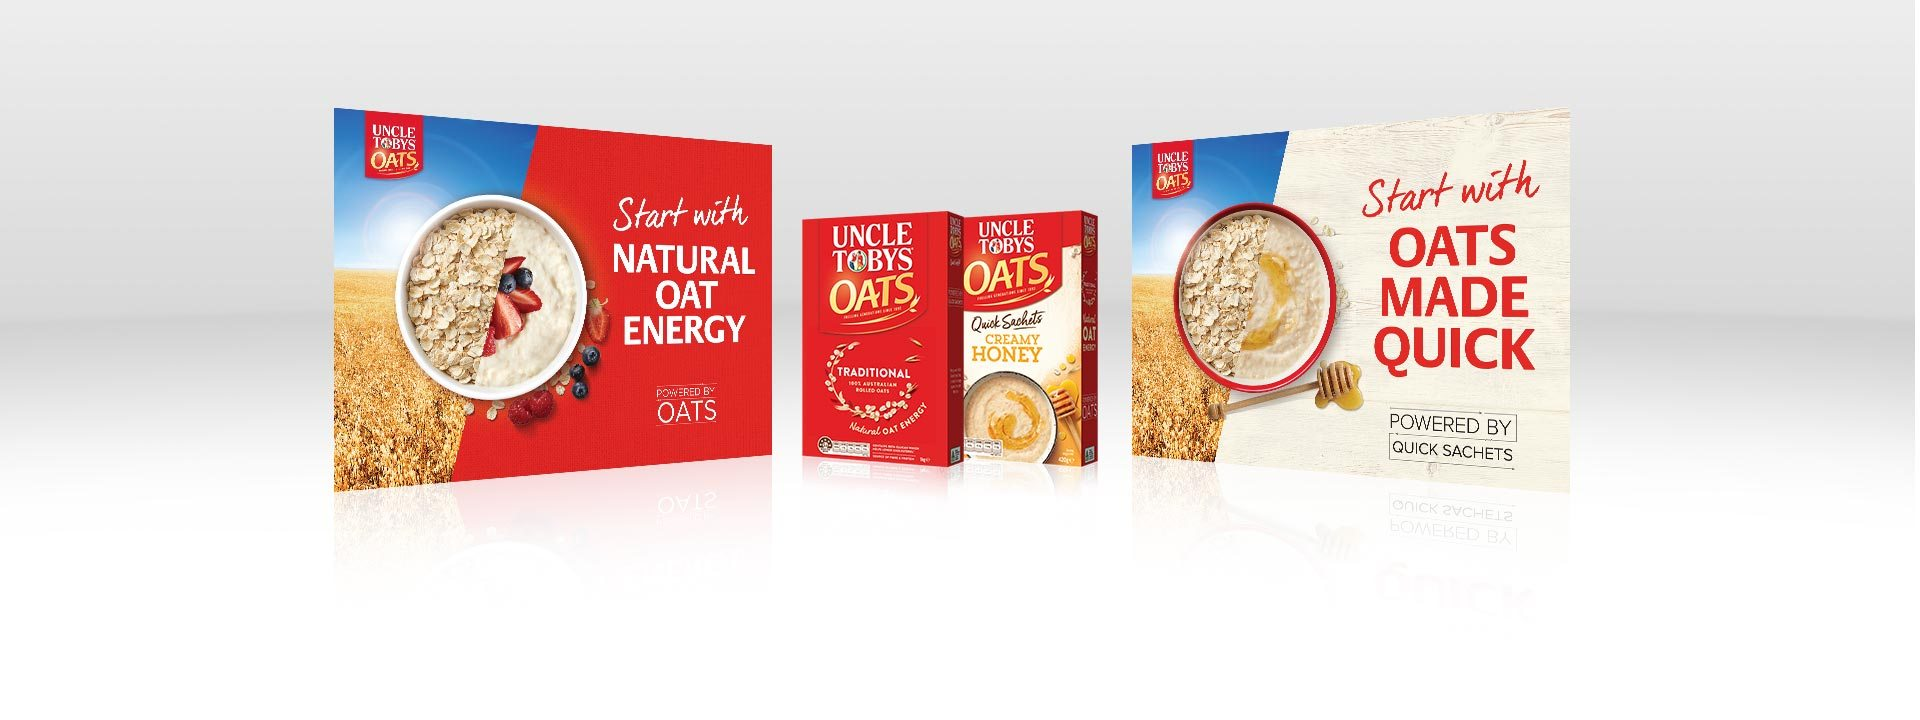 Nestle Uncle Tobys Oats 2018 KV packs